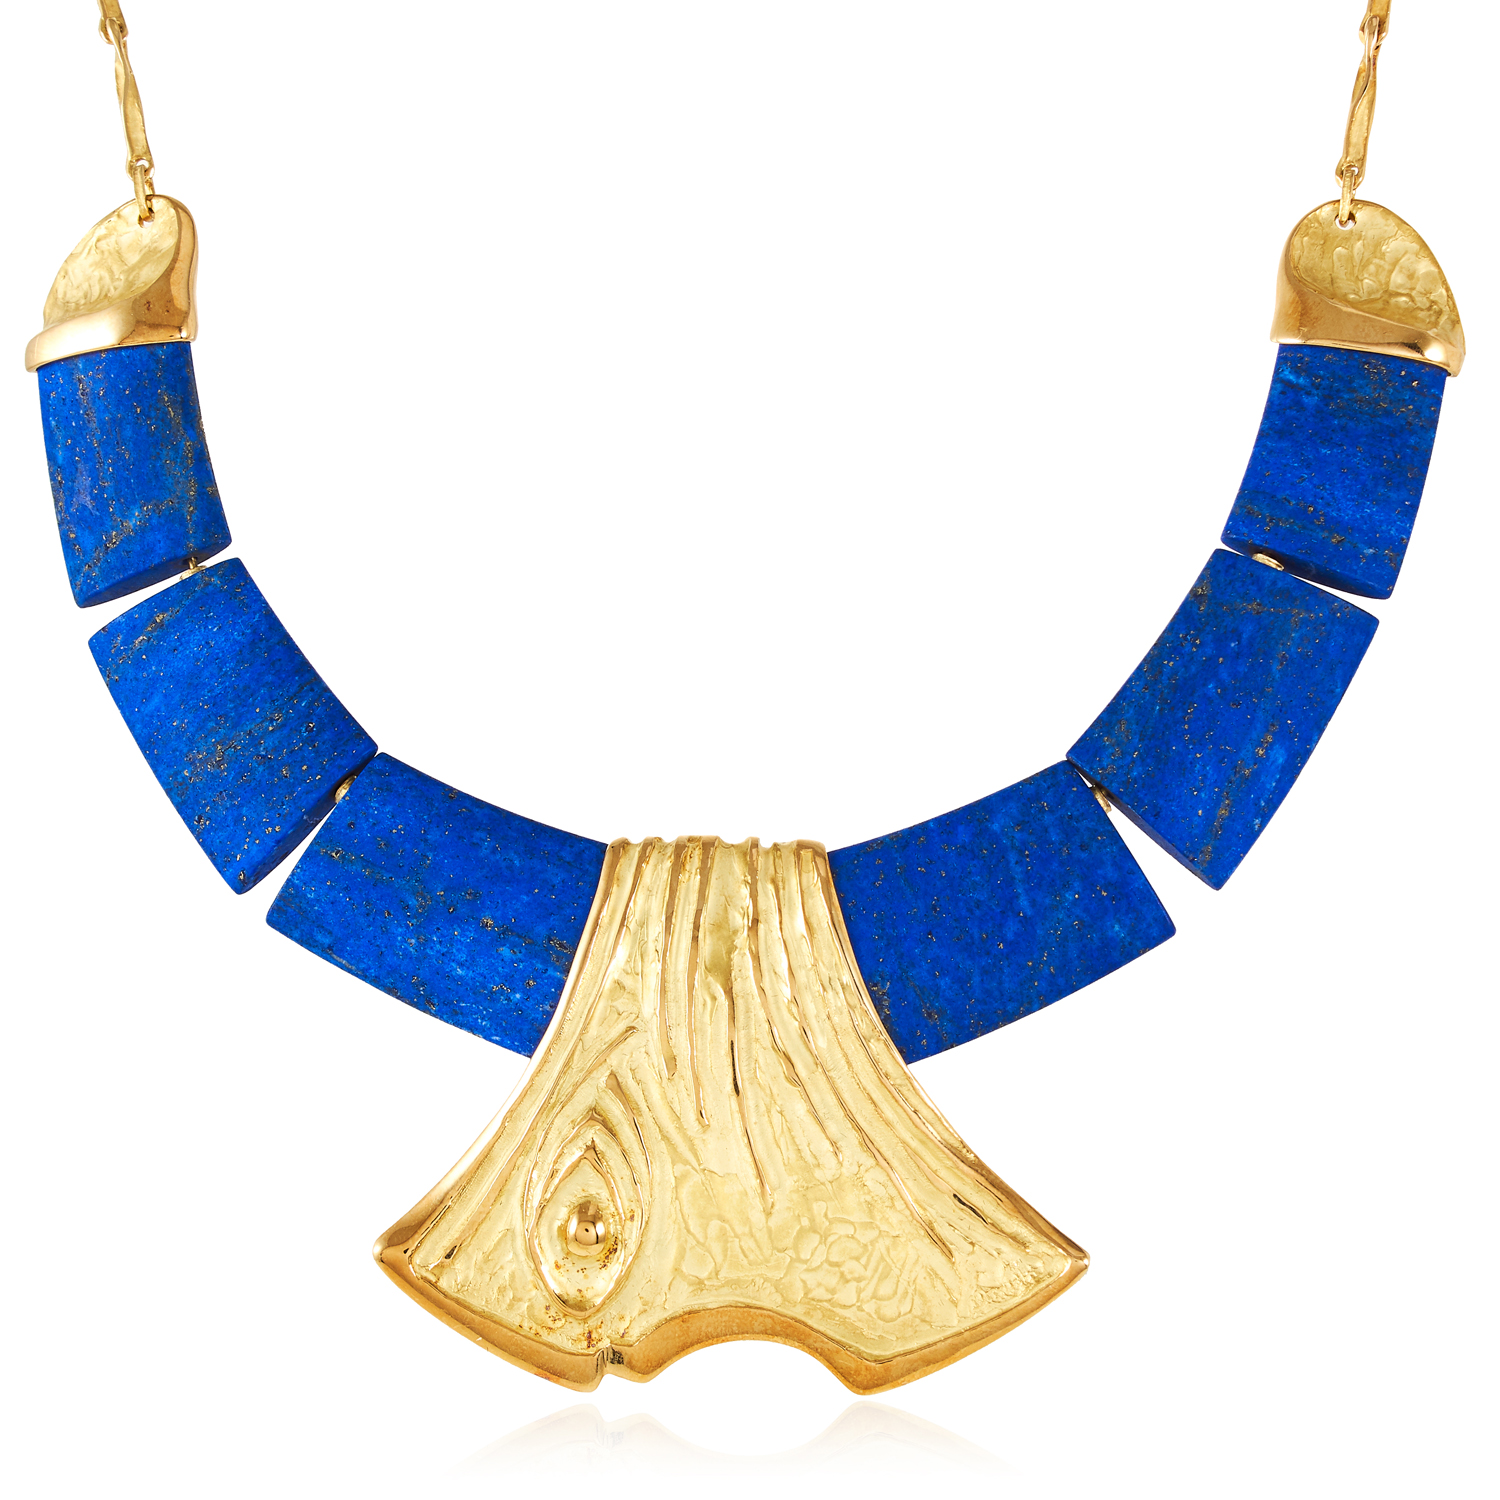 A LAPIS LAZULI COLLAR NECKLACE in 18ct yellow gold, designed as a collar of six graduated polished